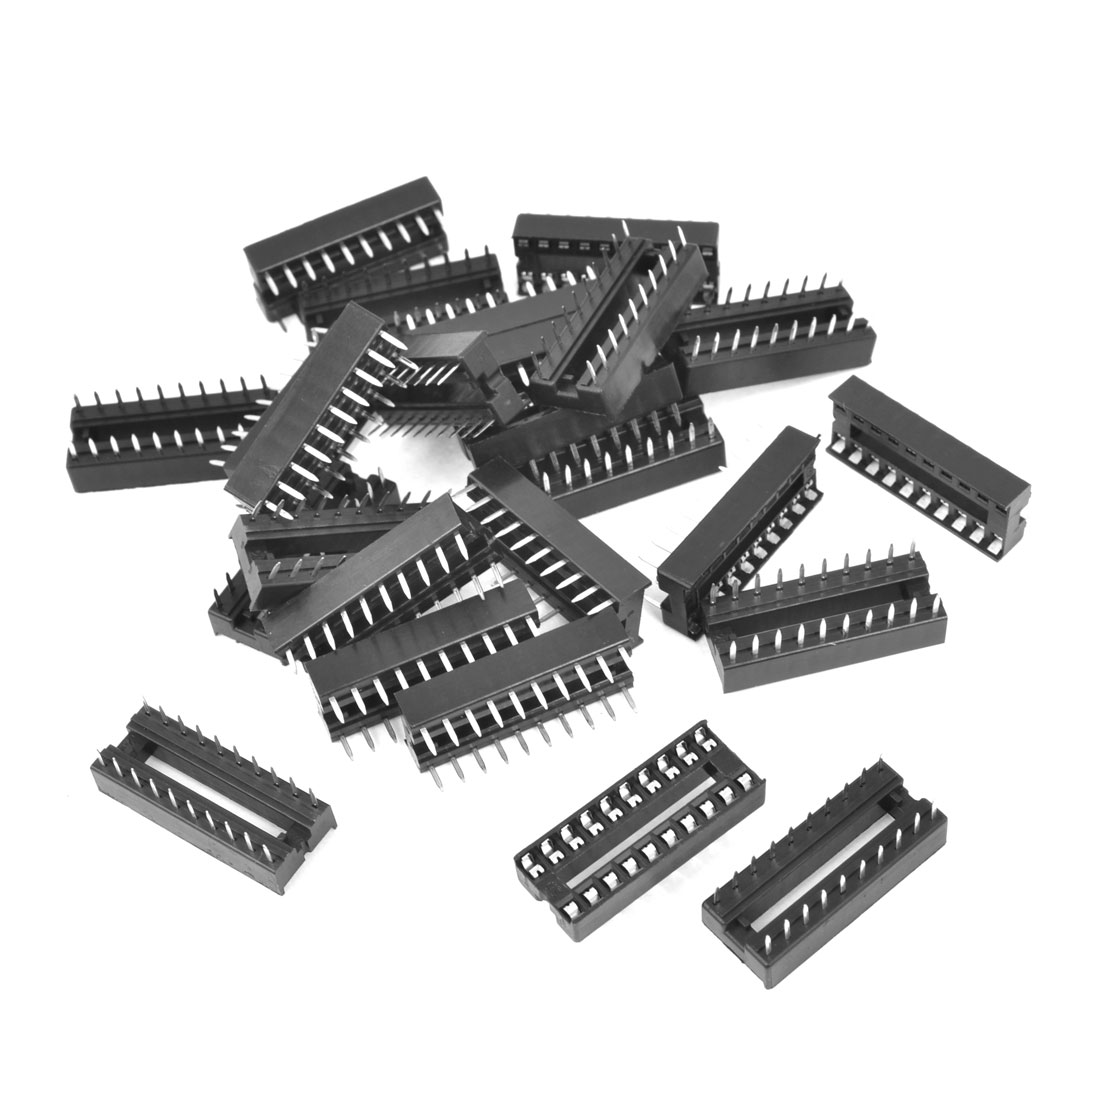 25 Pieces 2.54mm Pitch 20 Pins Double Row DIP IC Socket Adapter Solder